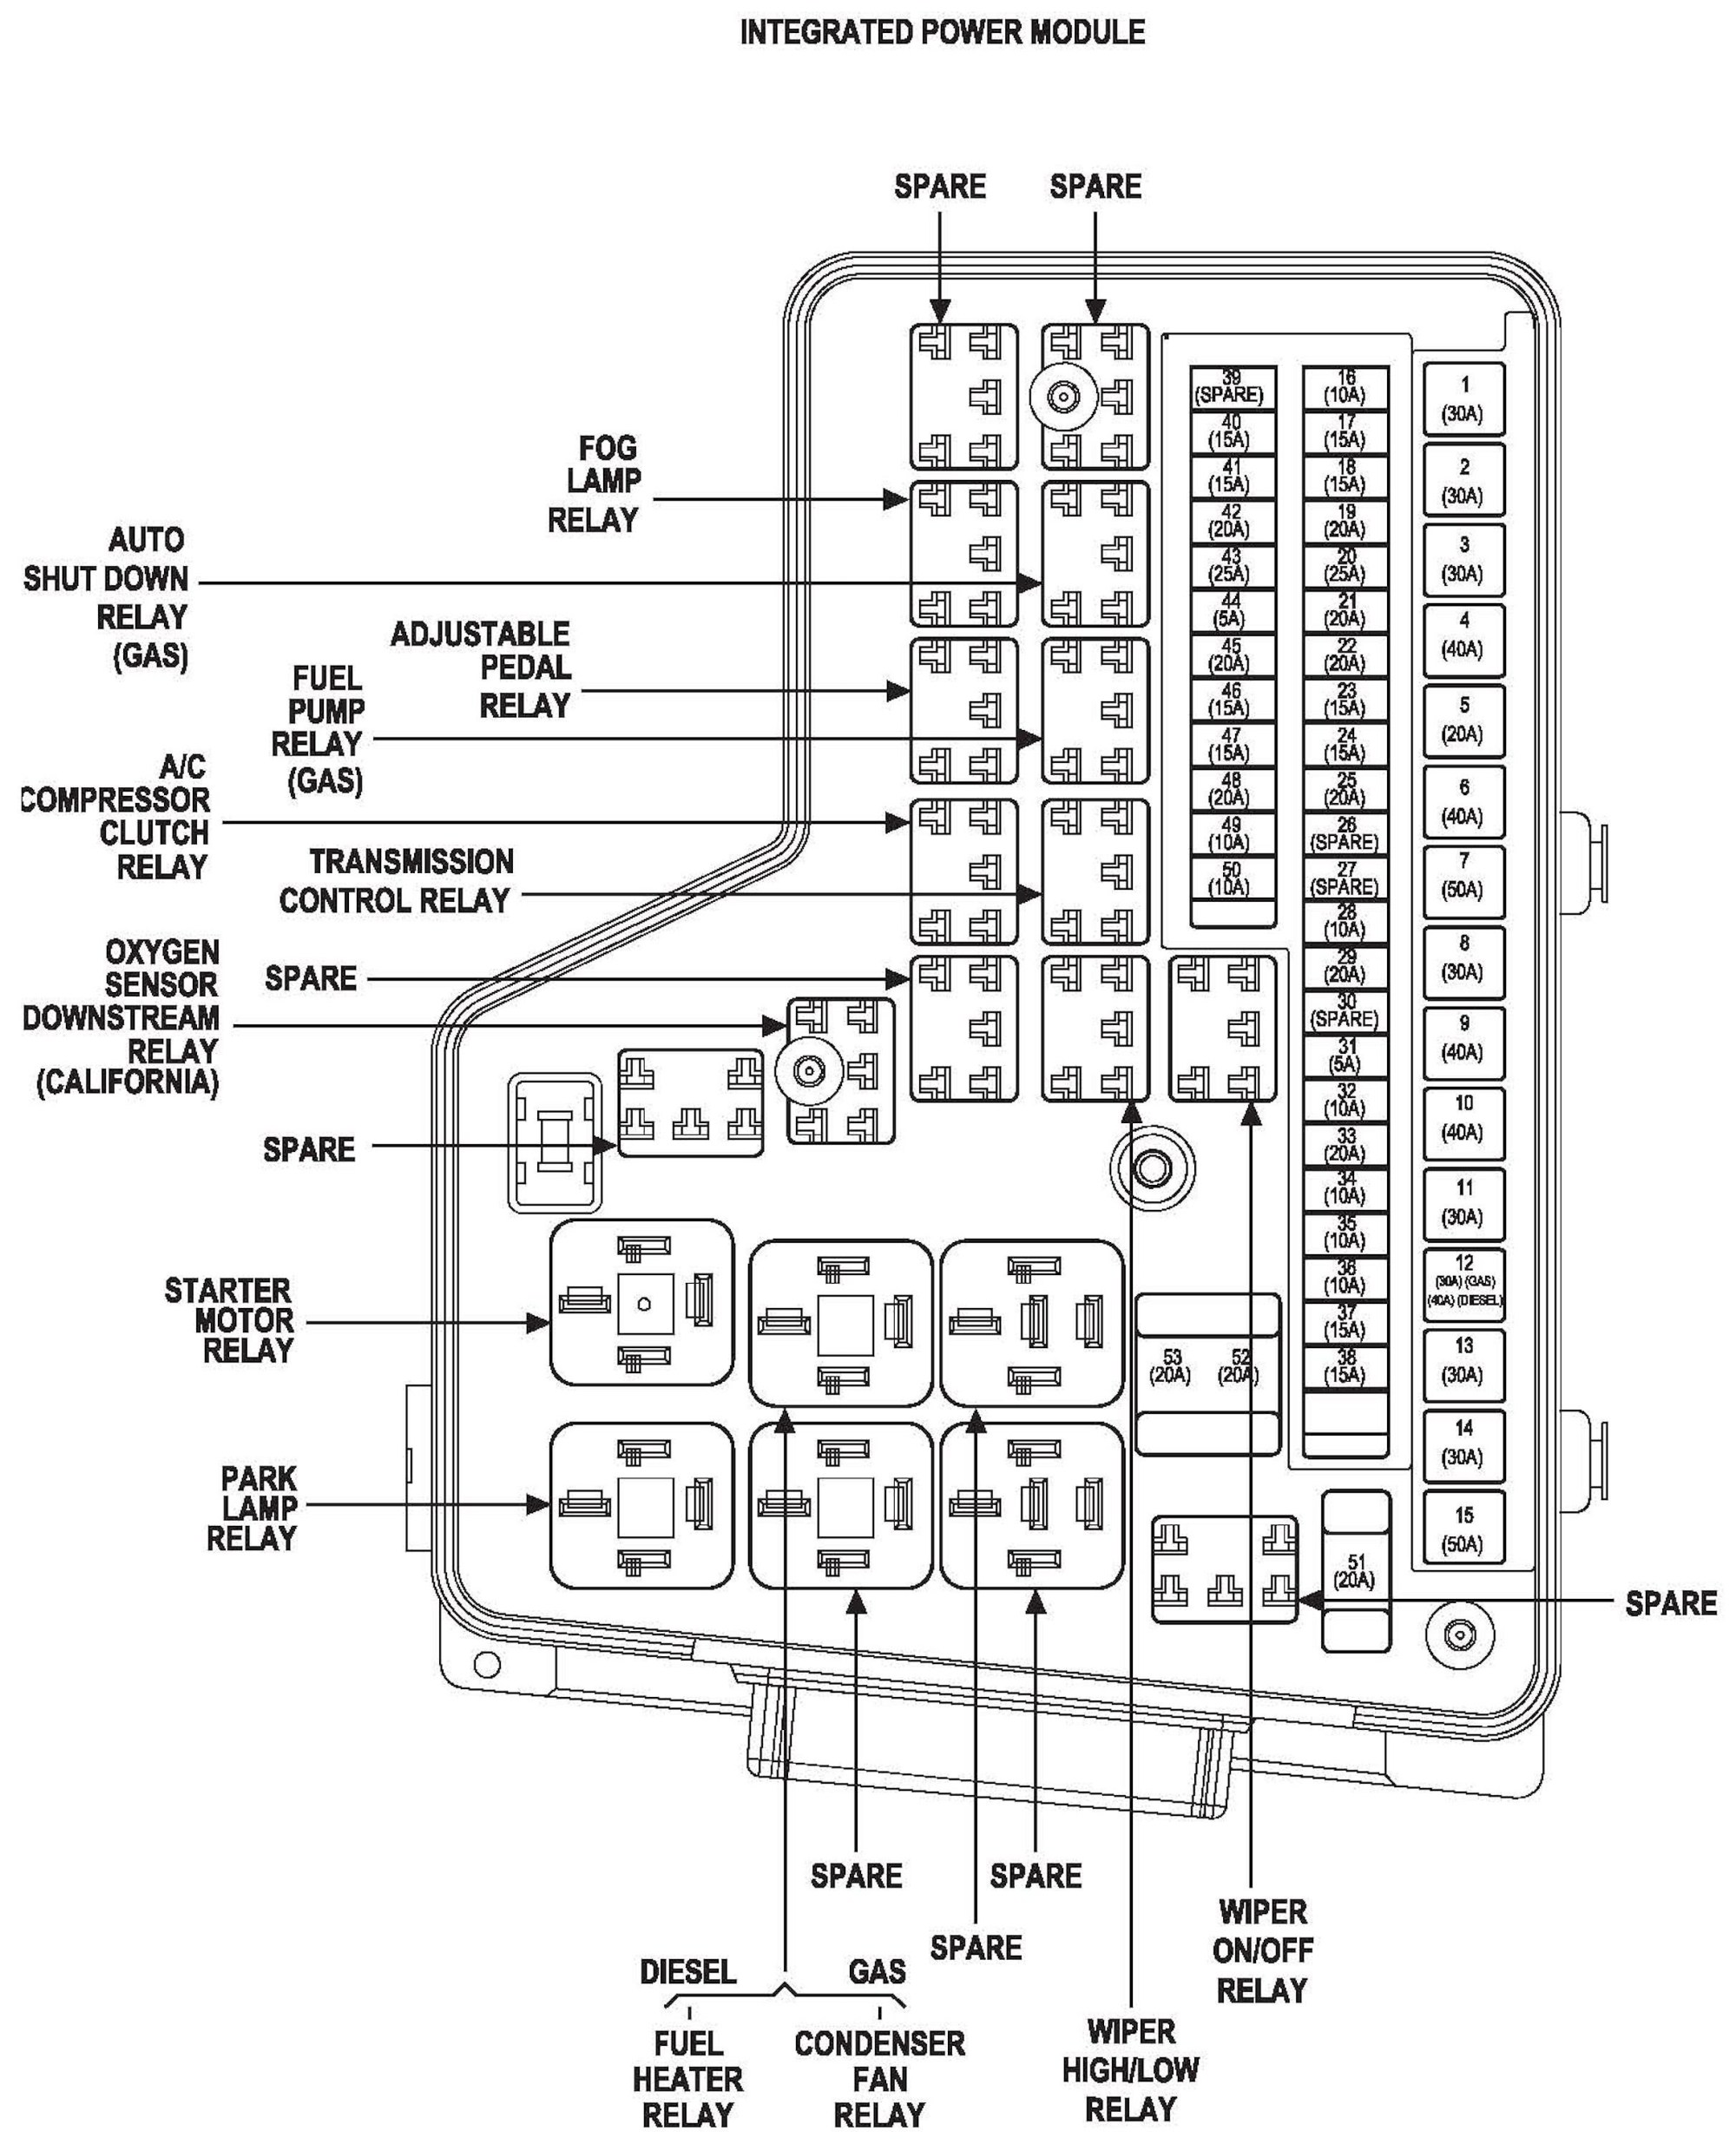 hight resolution of 2004 dodge ram 3500 fuse box wiring diagram review 2008 dodge ram 3500 fuse box location dodge ram 3500 fuse box